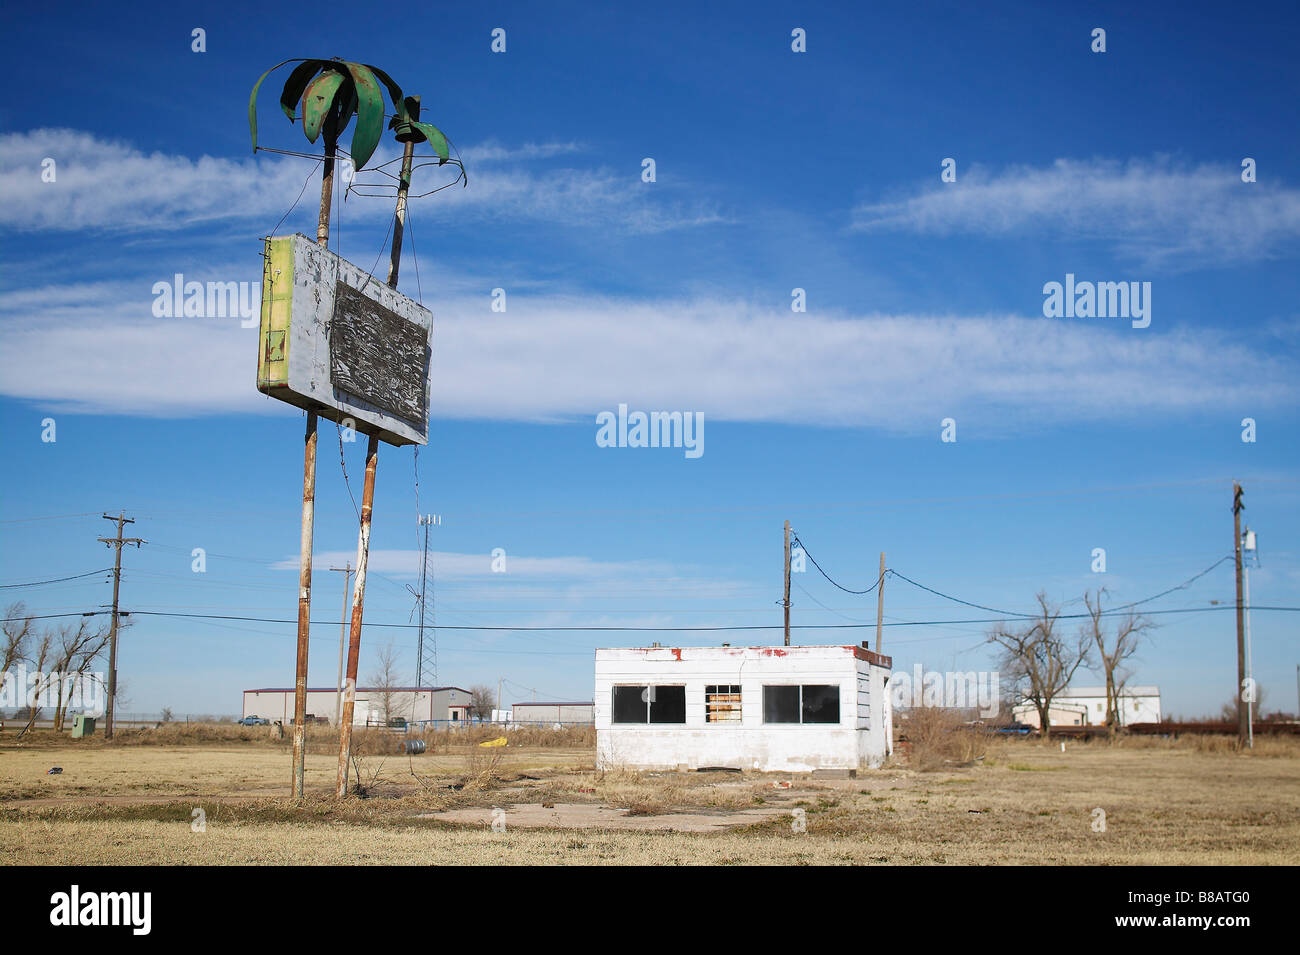 Abandon Motel, Western Texas - Stock Image